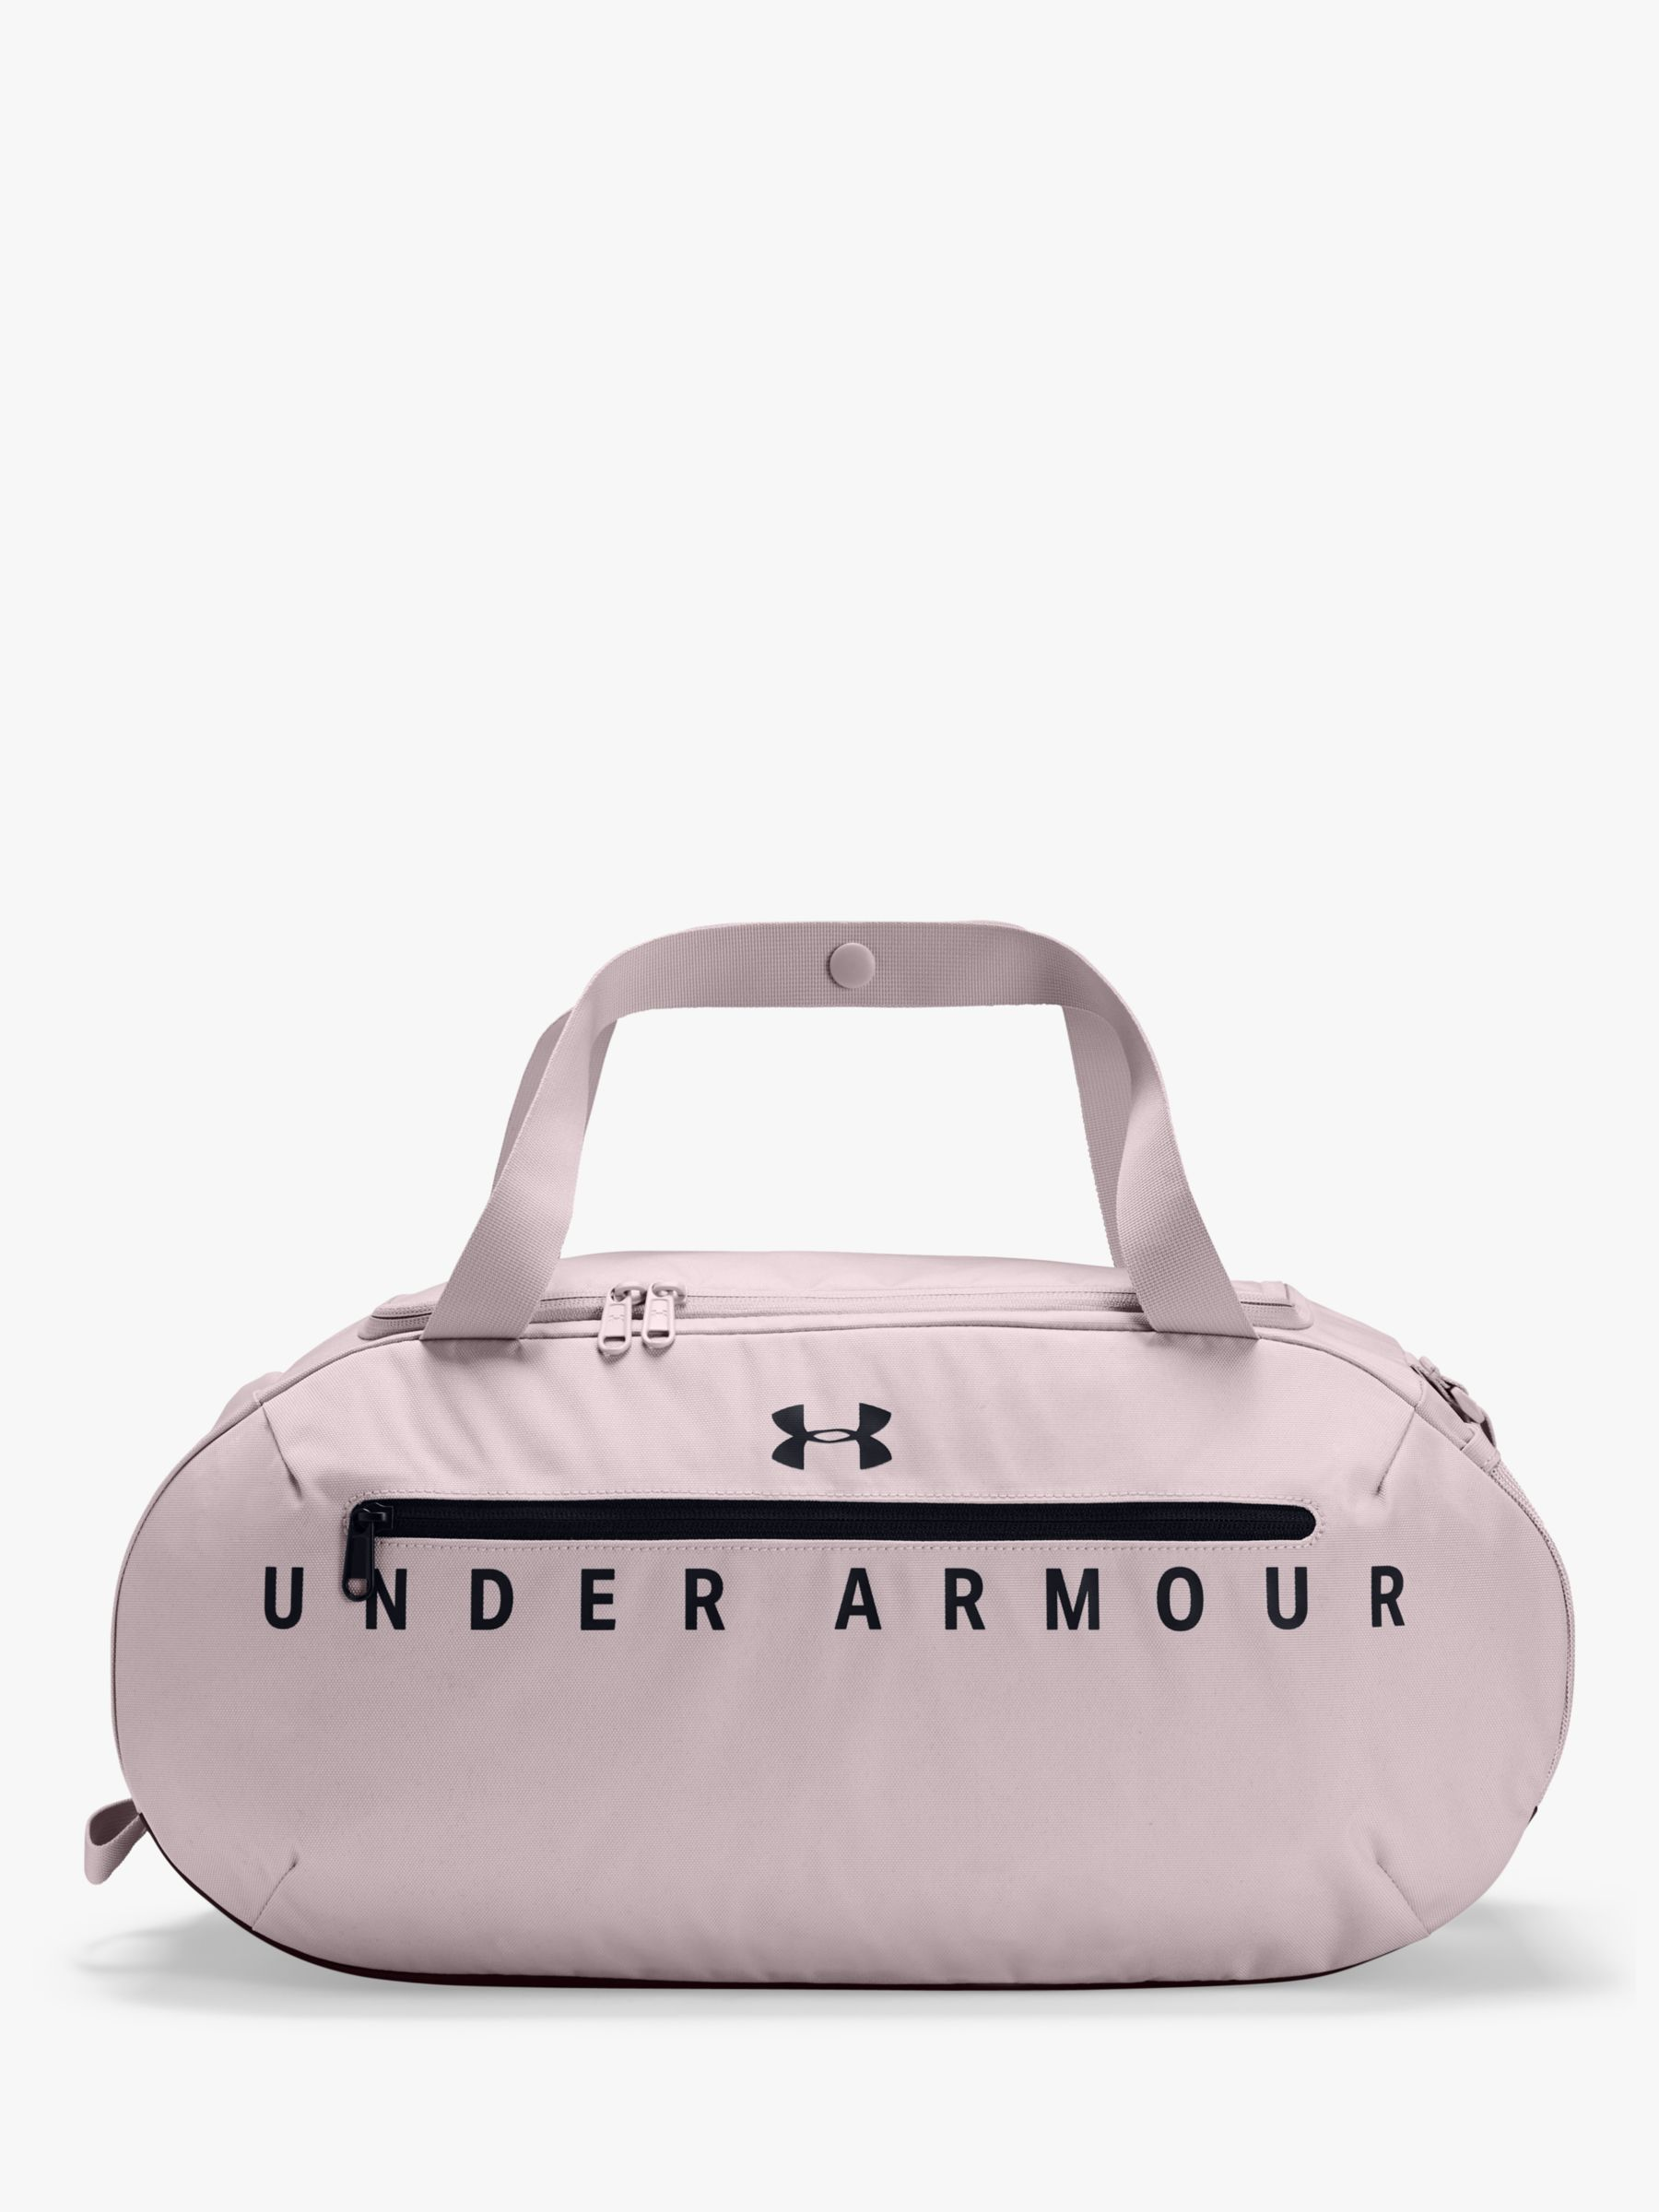 Under Armour Under Armour Roland Duffel Bag, Small